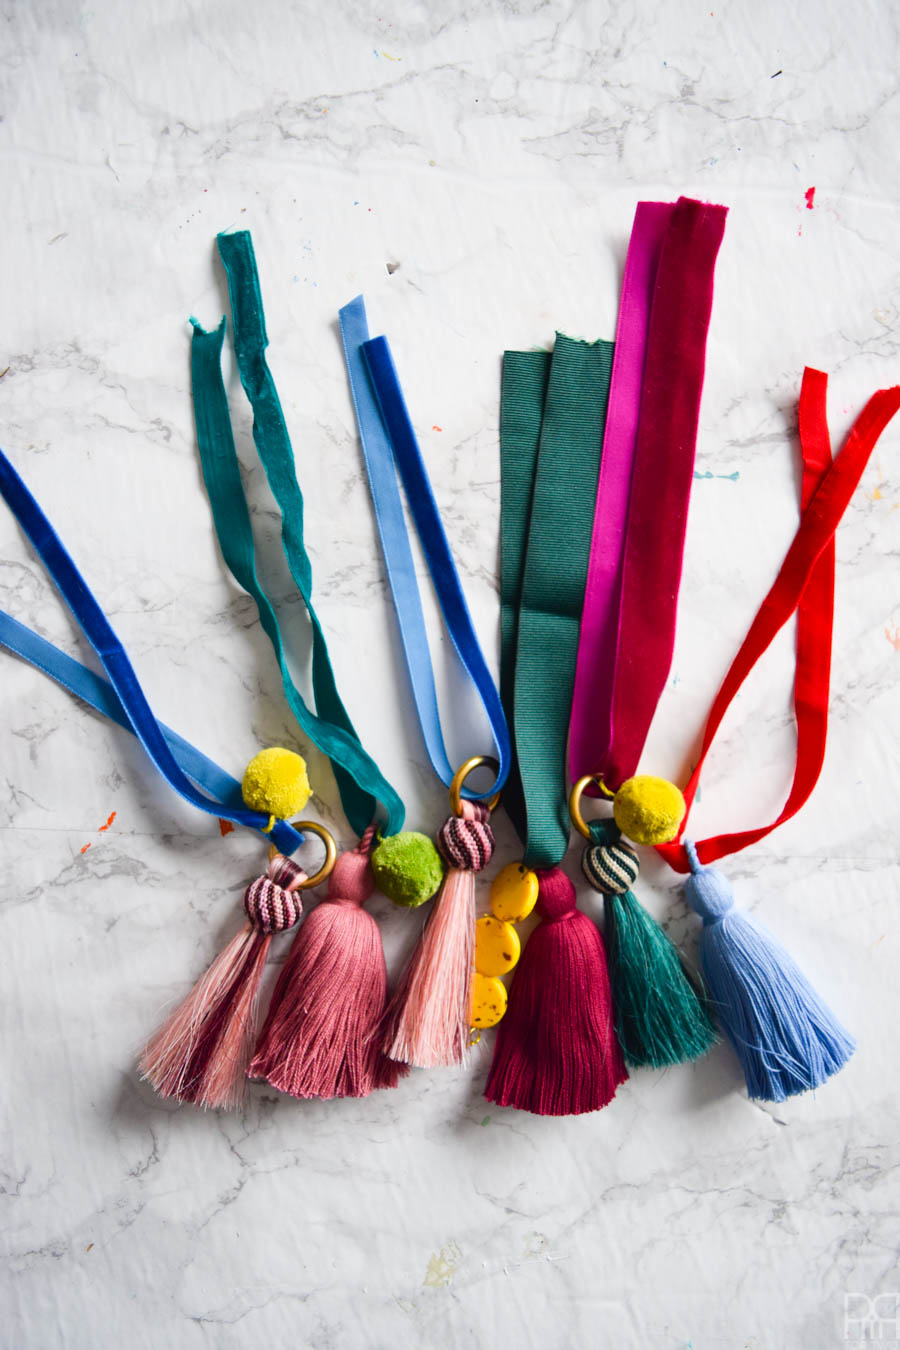 Tassel and Pom Pom Decanter Tags